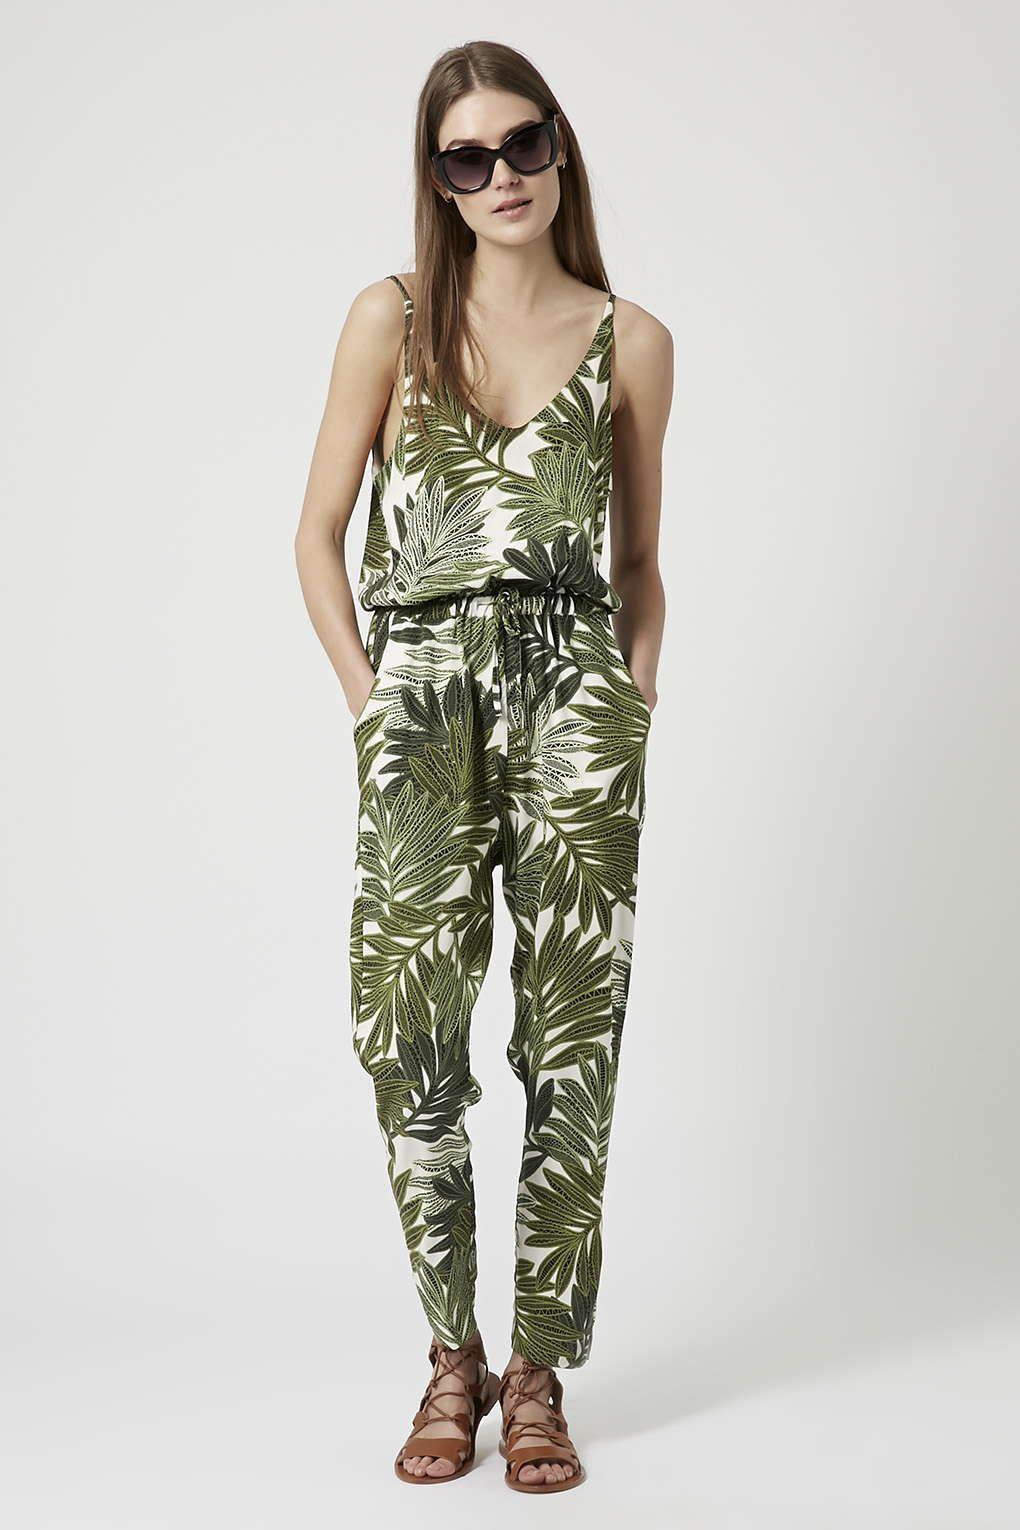 ec4ae7a7931 Palm Leaf Print Strappy Jumpsuit - Topshop